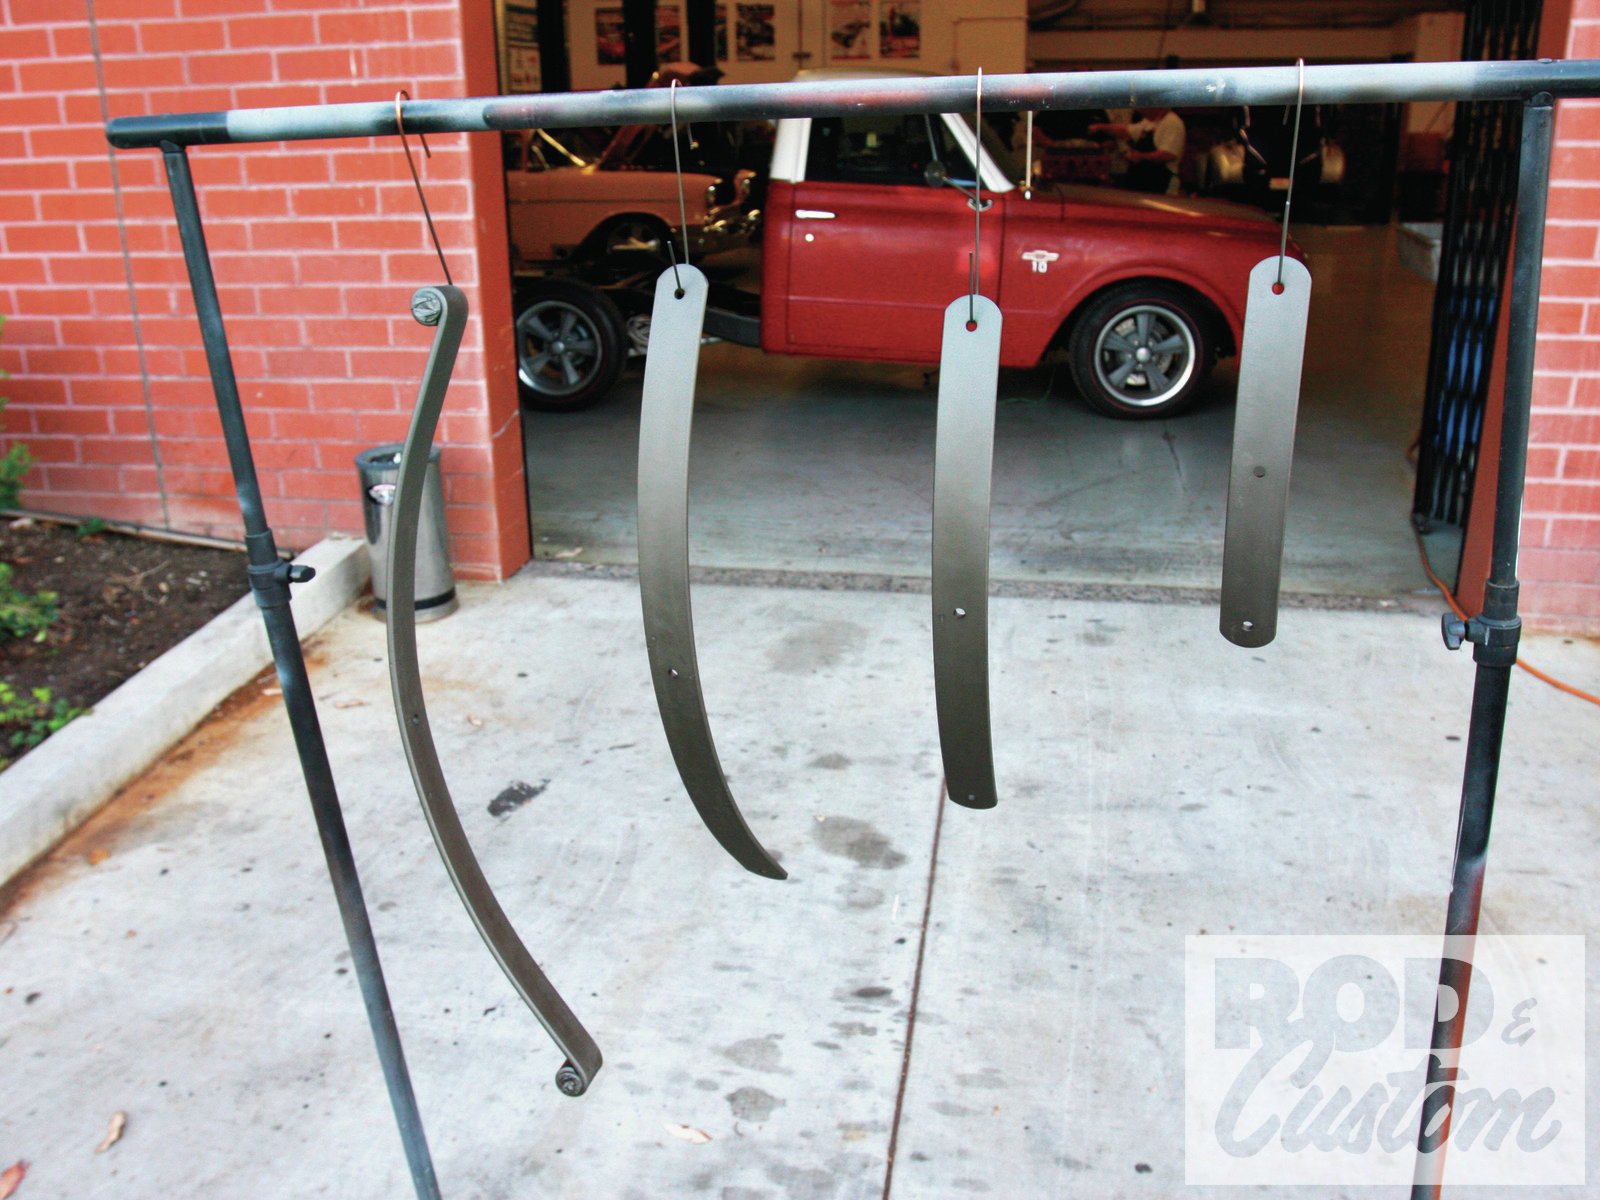 9. Here's our front spring, the leaves separated for painting. This will ensure no unsightly rusty water trails from between the leaves after assembly. Details, details …